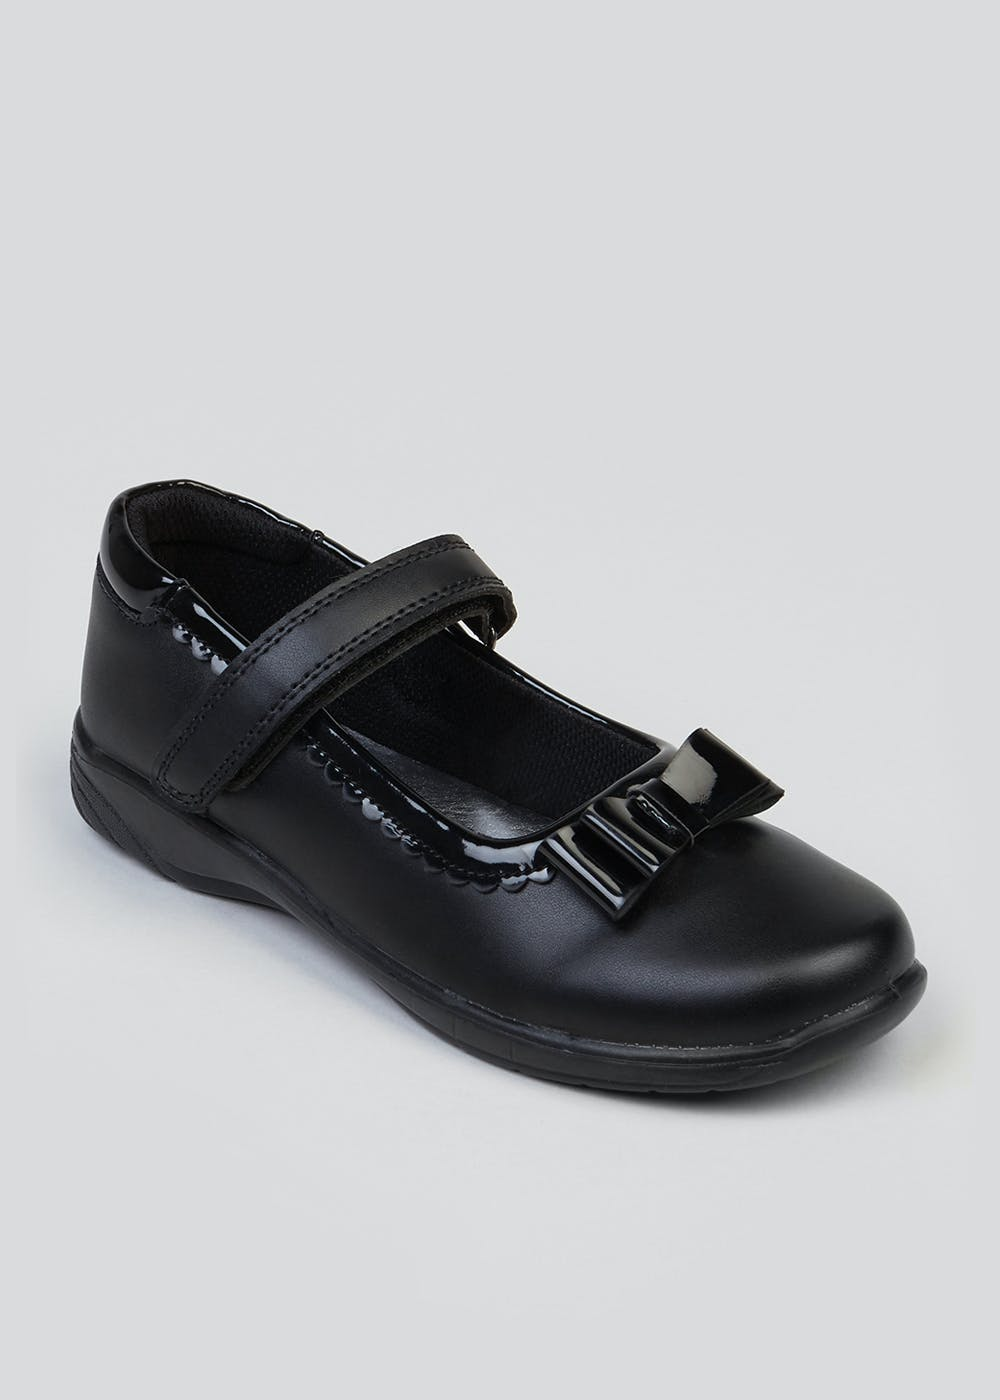 a91b5a2731 Girls Coated Leather School Shoes (Younger 8-Older 3) – Black – Matalan